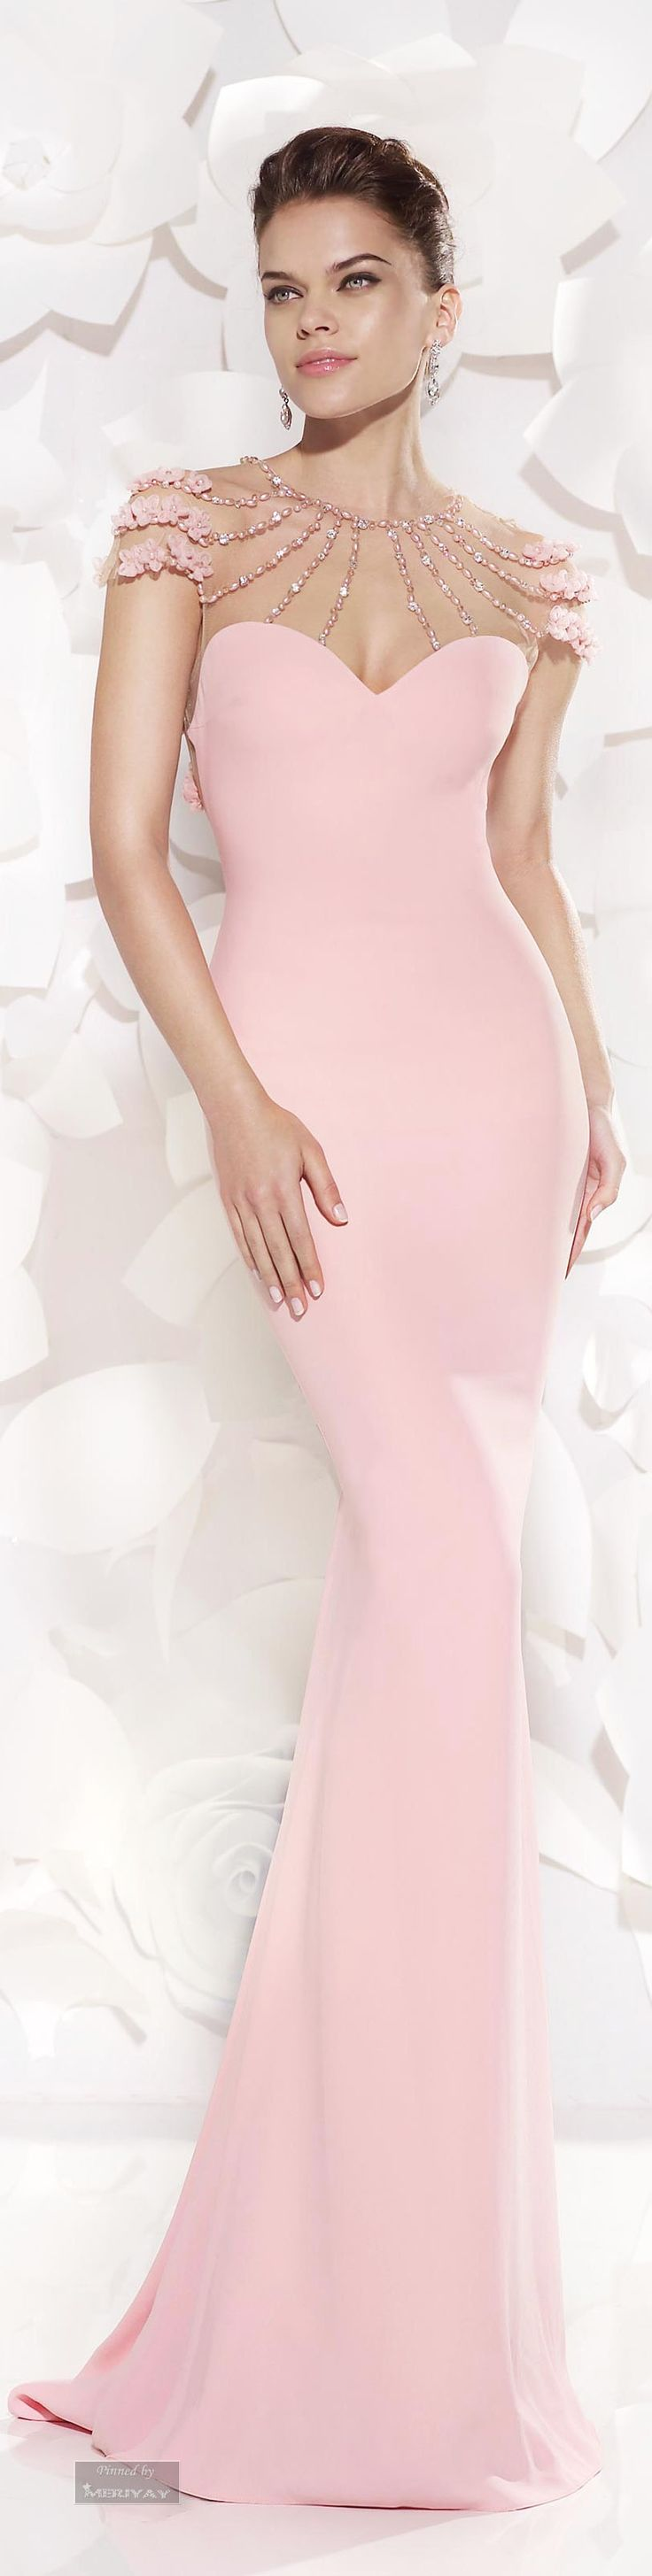 Tarik Ediz.Evening gown - celebrate her event with the lady in hot pink dress - #thejewelryhut